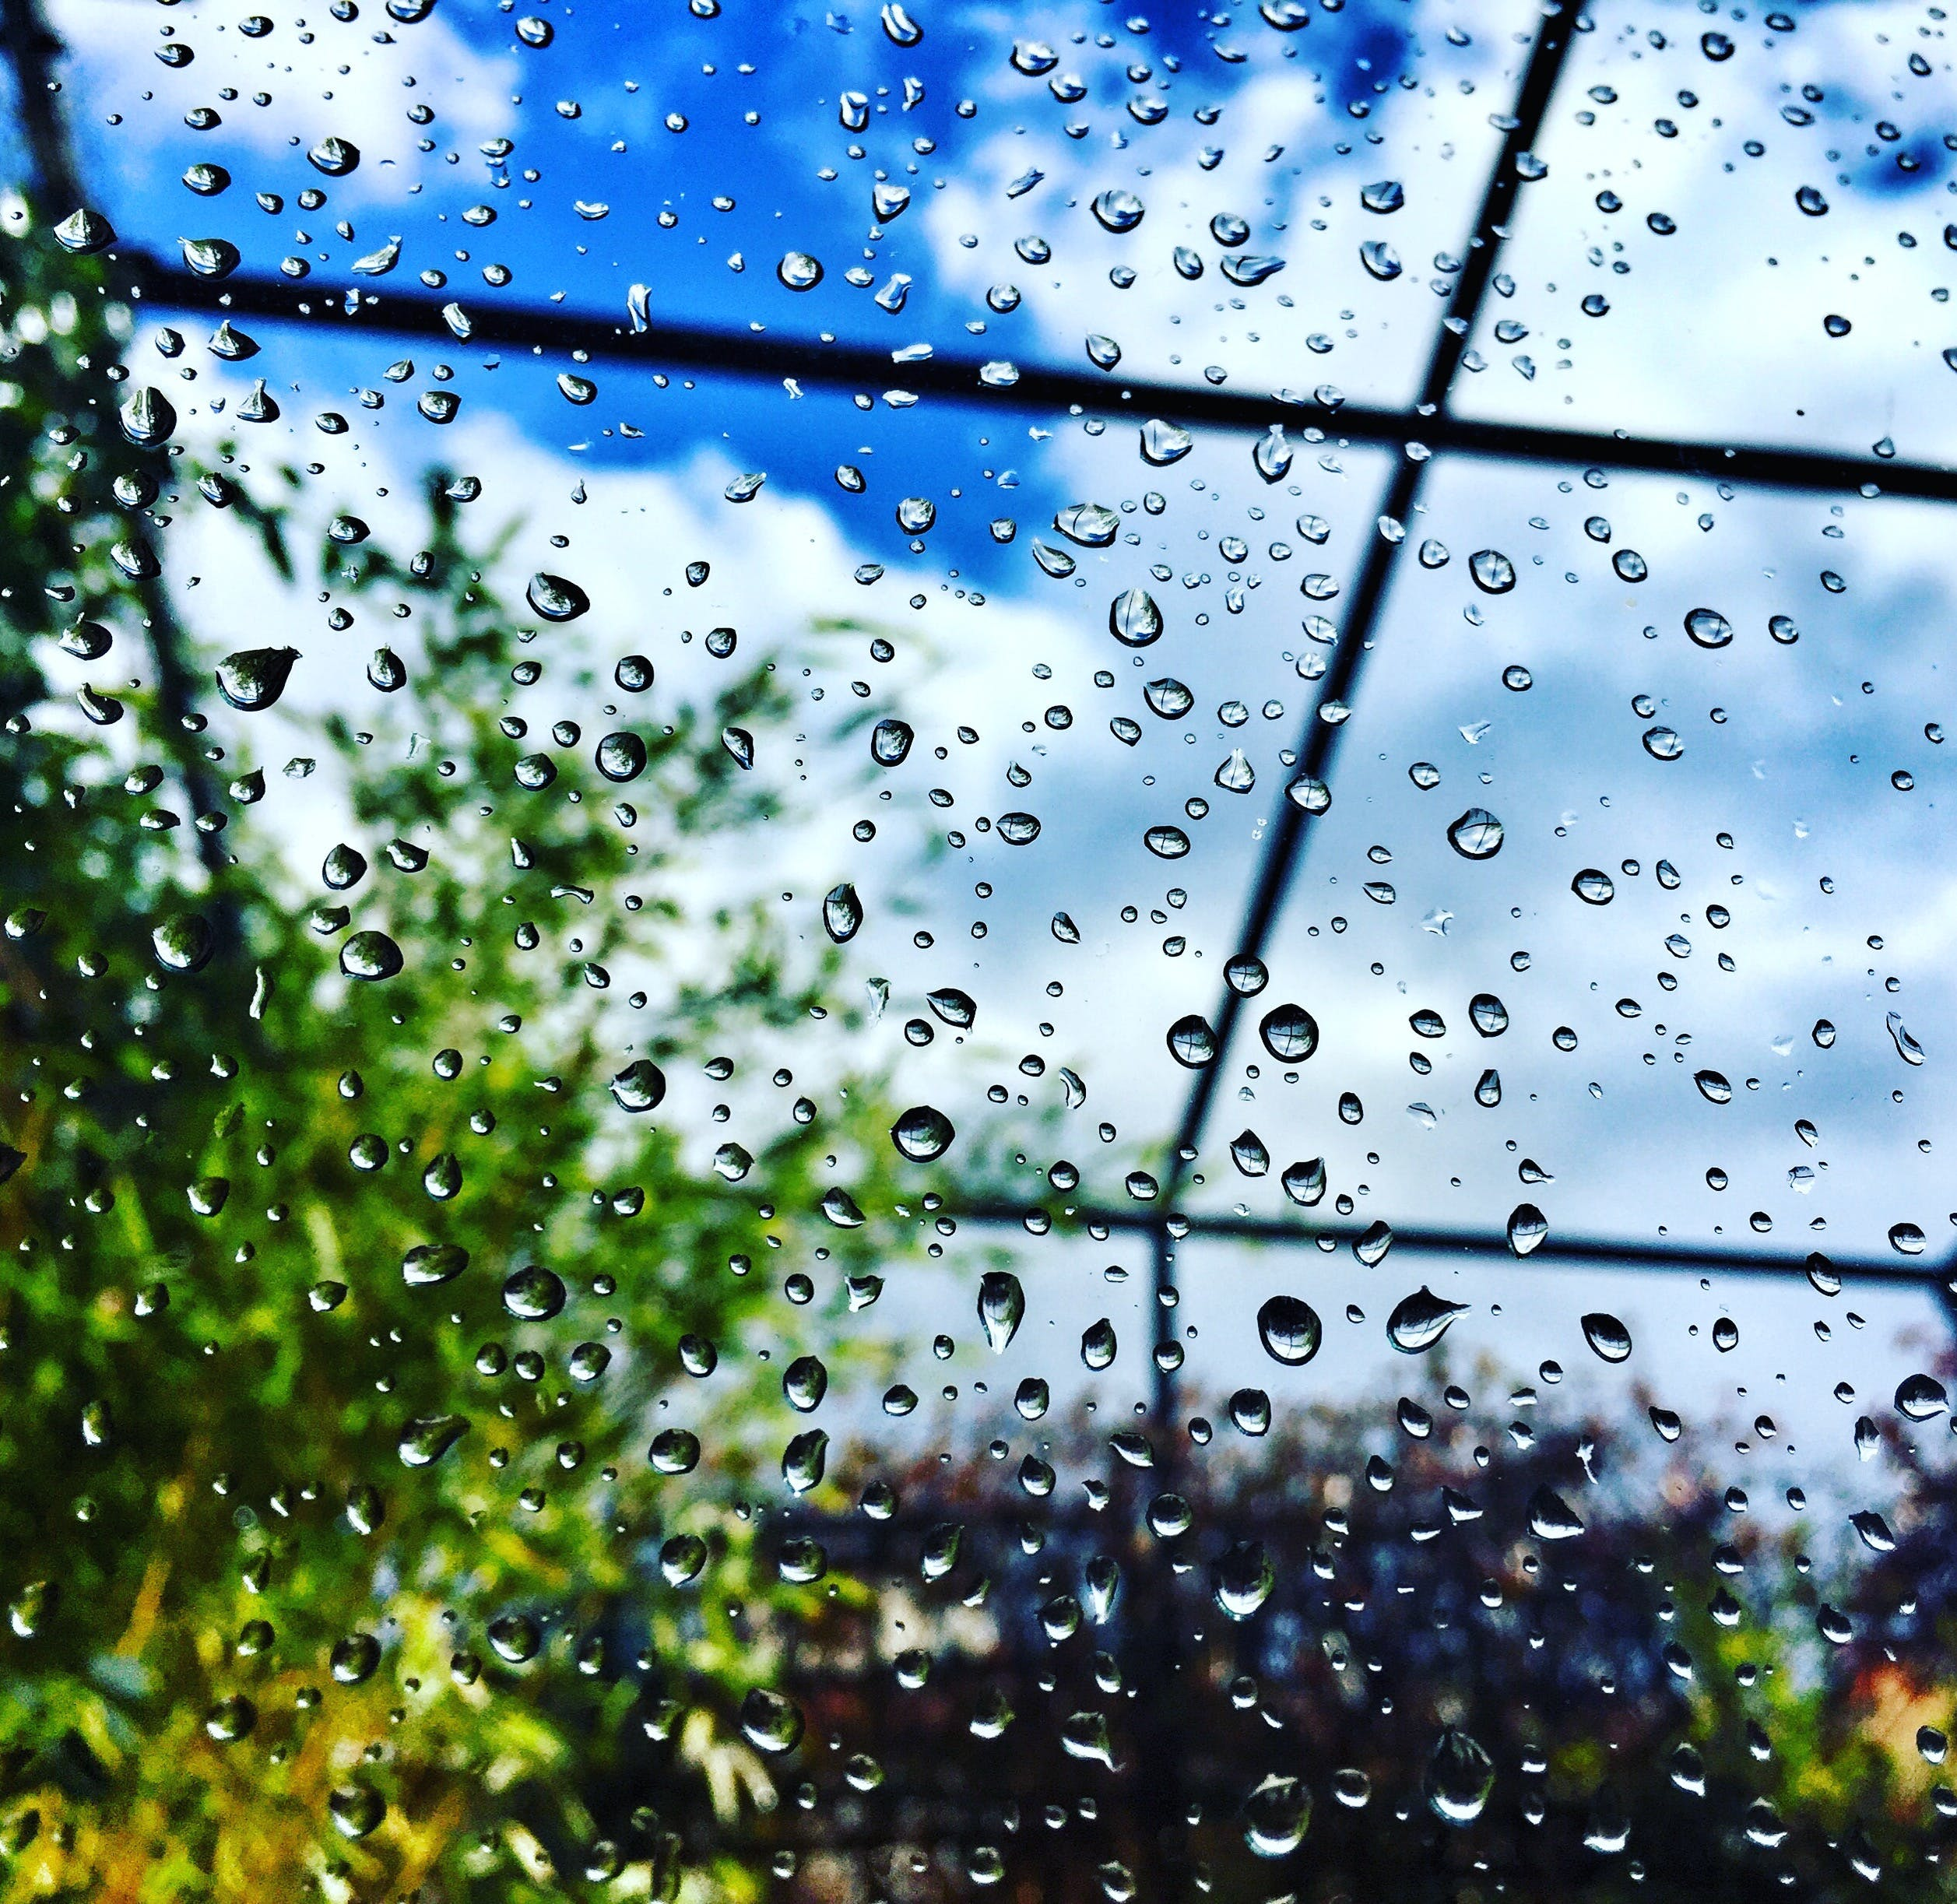 Free stock photo of glass, rainy, rain, raindrops